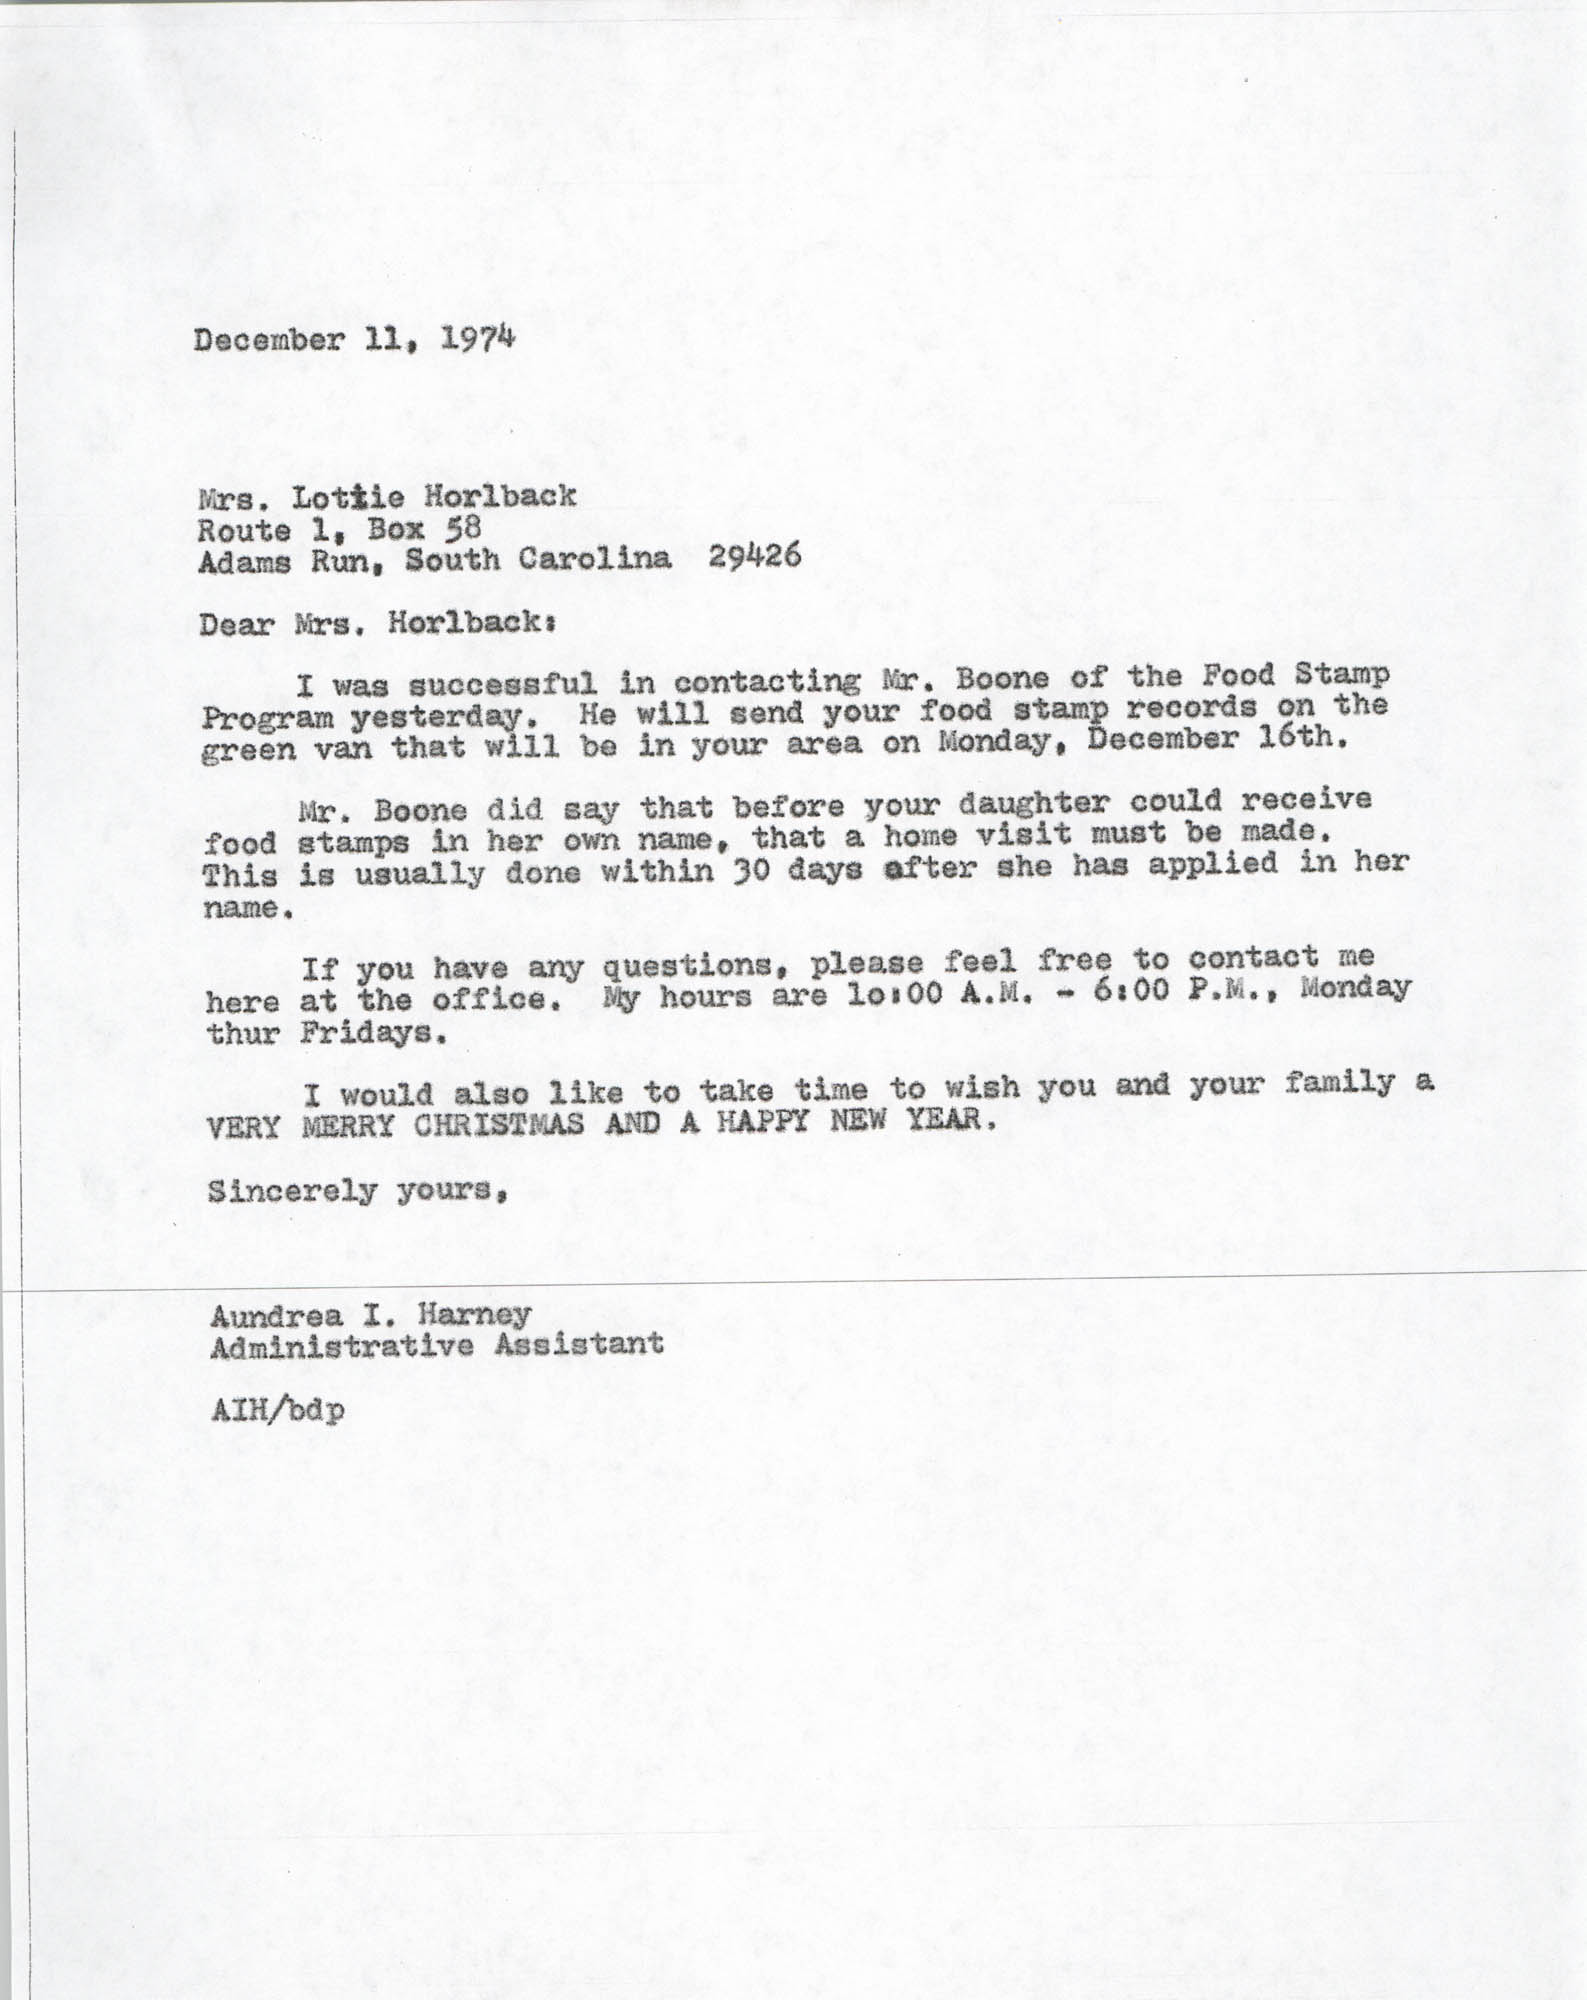 Letter from Aundrea I. Harney to Lottie Horlback, December 11, 1974